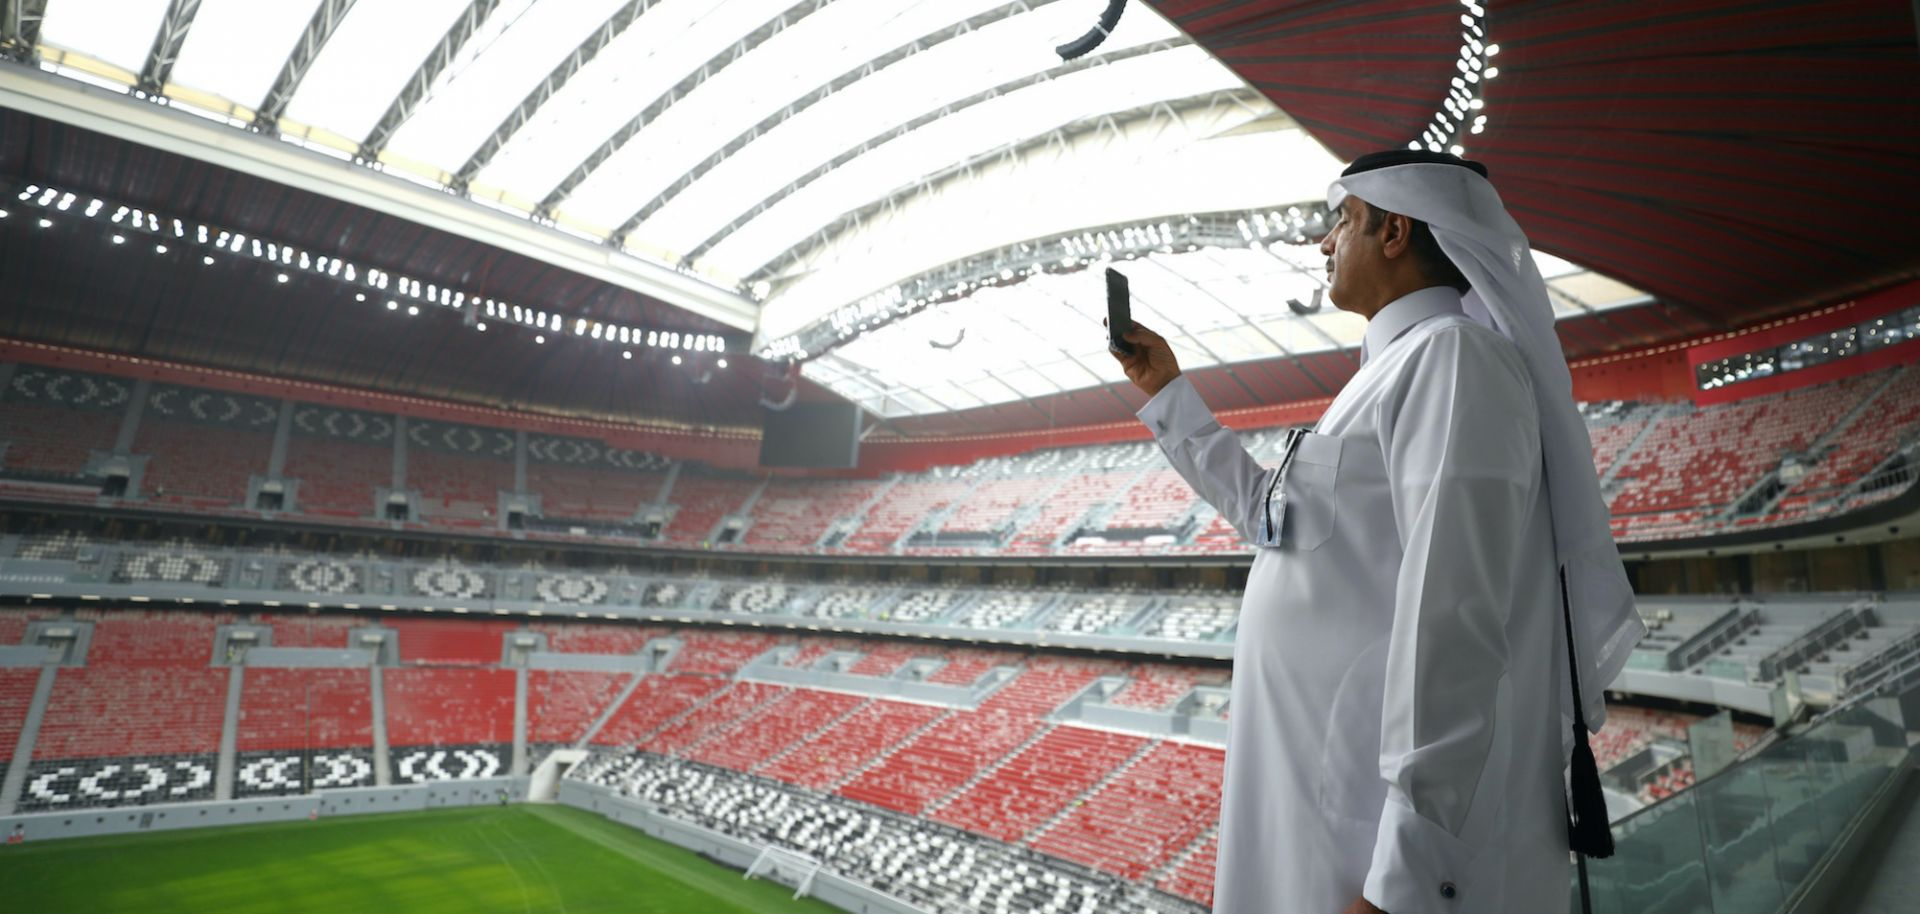 A man tours one of the soccer stadiums that will be used in the 2022 World Cup in Doha, Qatar.